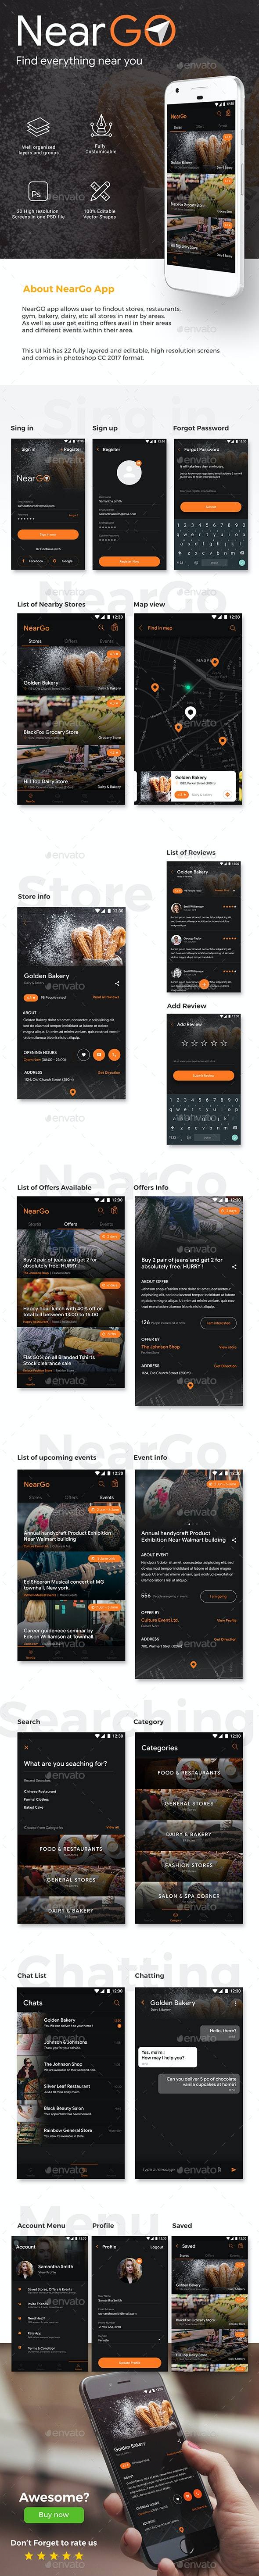 Near by Store Searching App UI Kit | NearGo - User Interfaces Web Elements